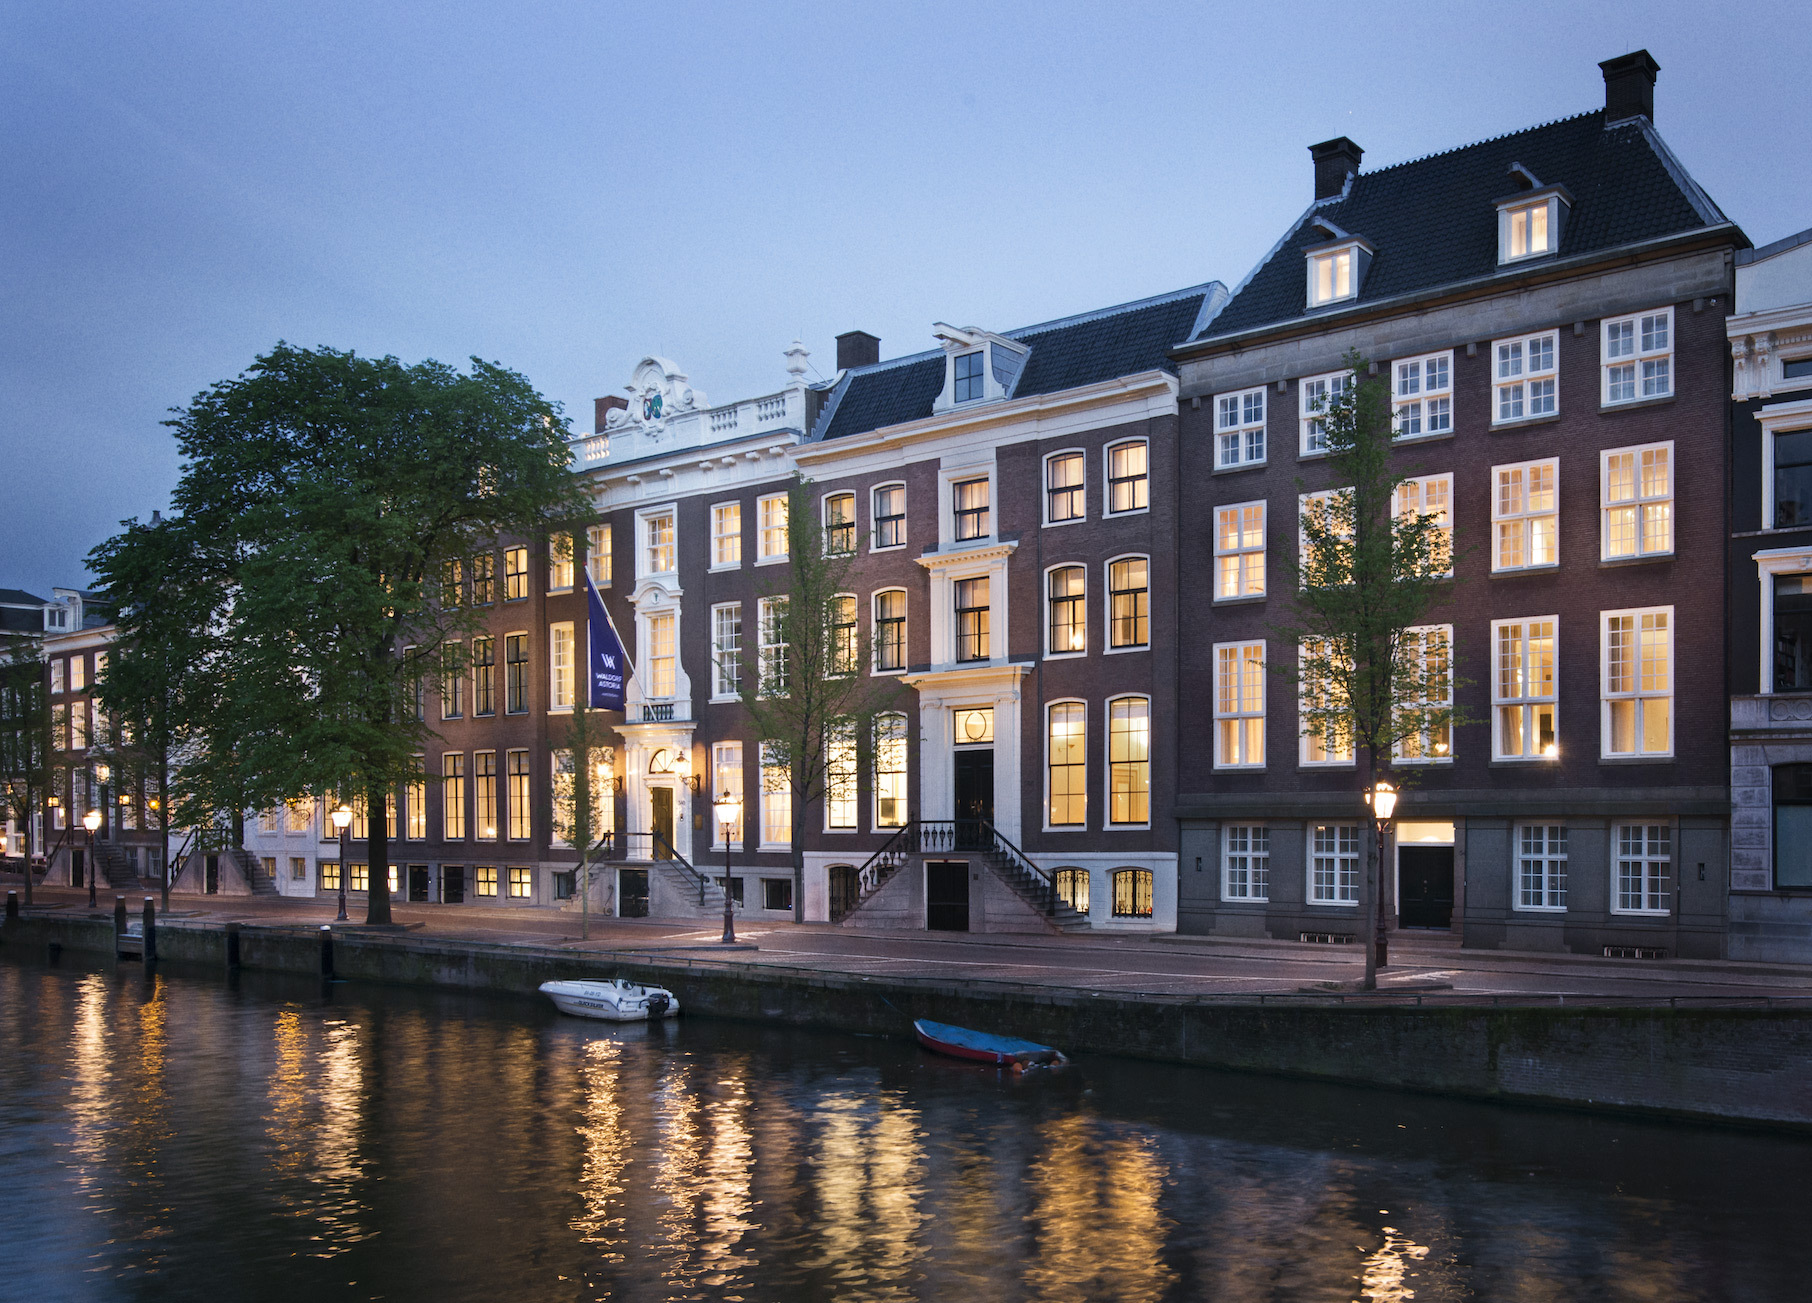 Waldorf astoria hotels resorts opens iconic luxury hotel for Amsterdam hotel